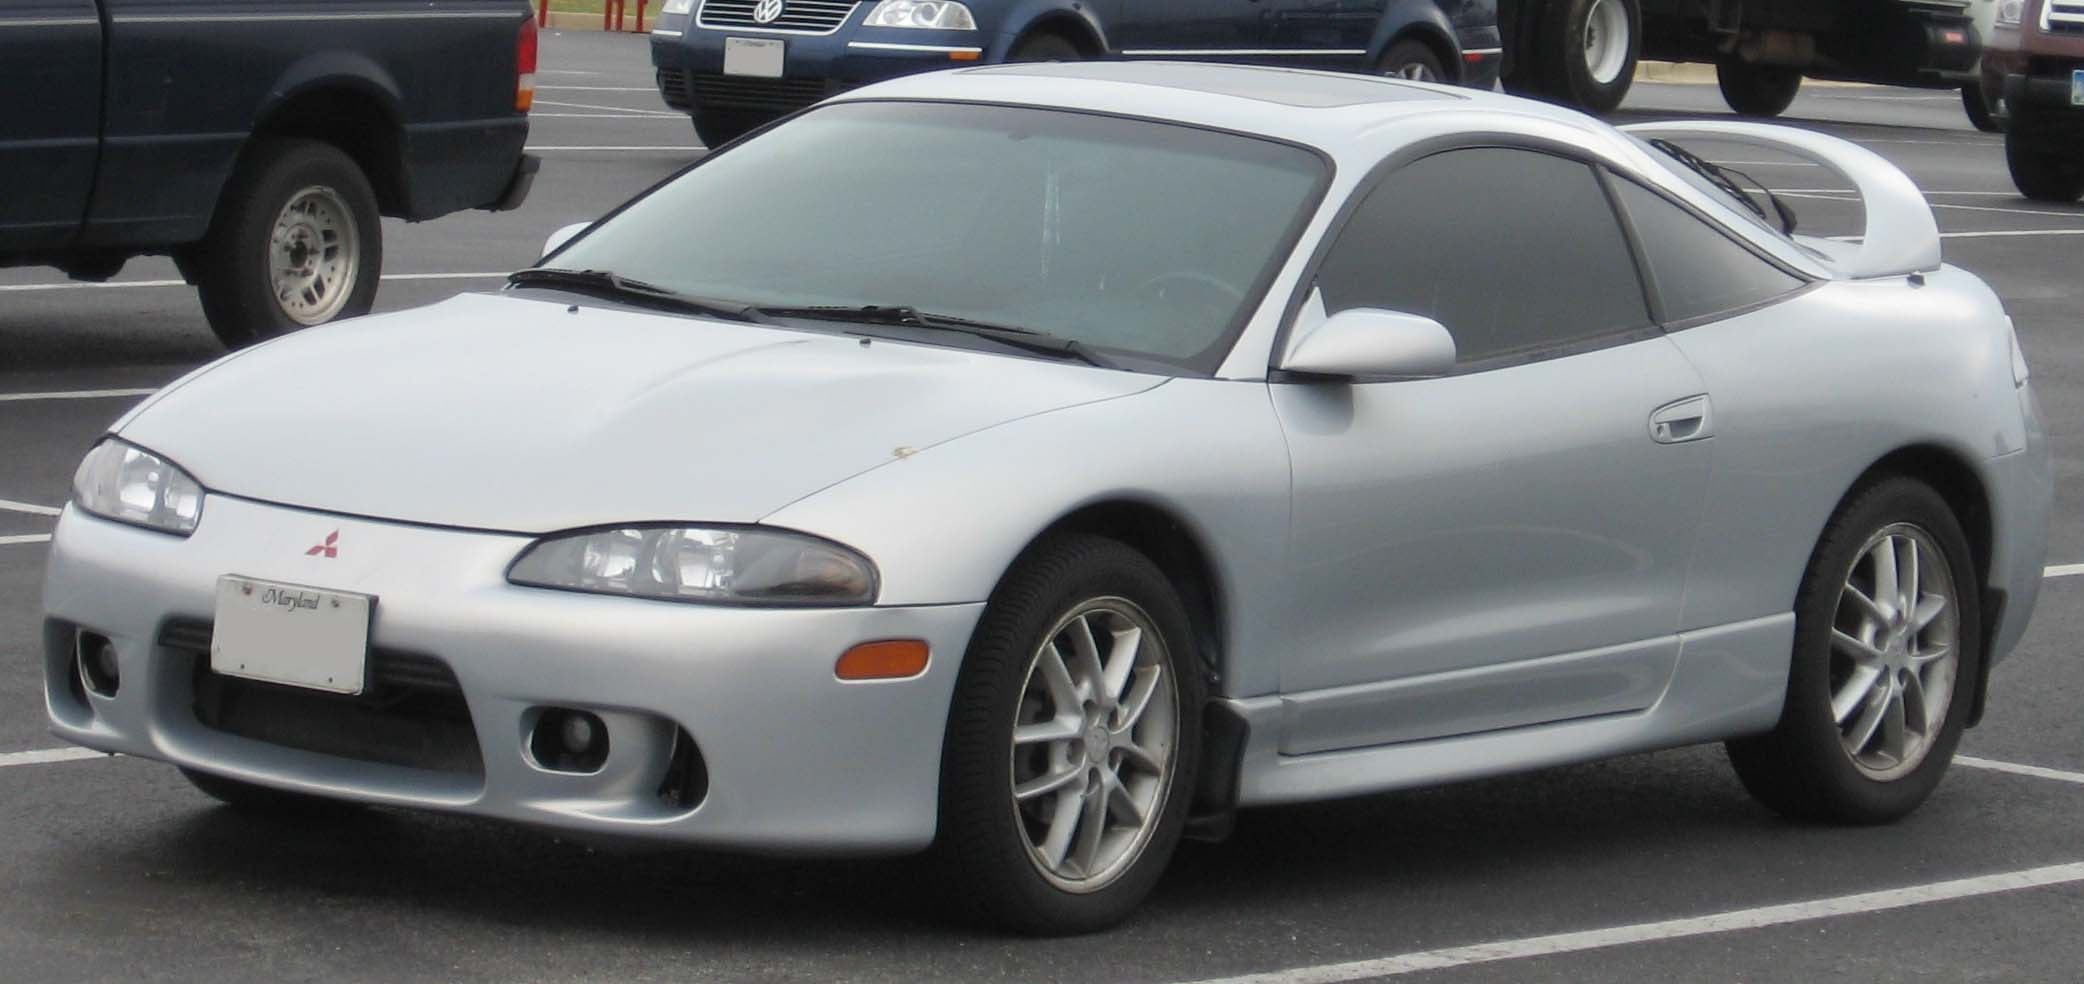 mitsubishi eclipse pictures #4